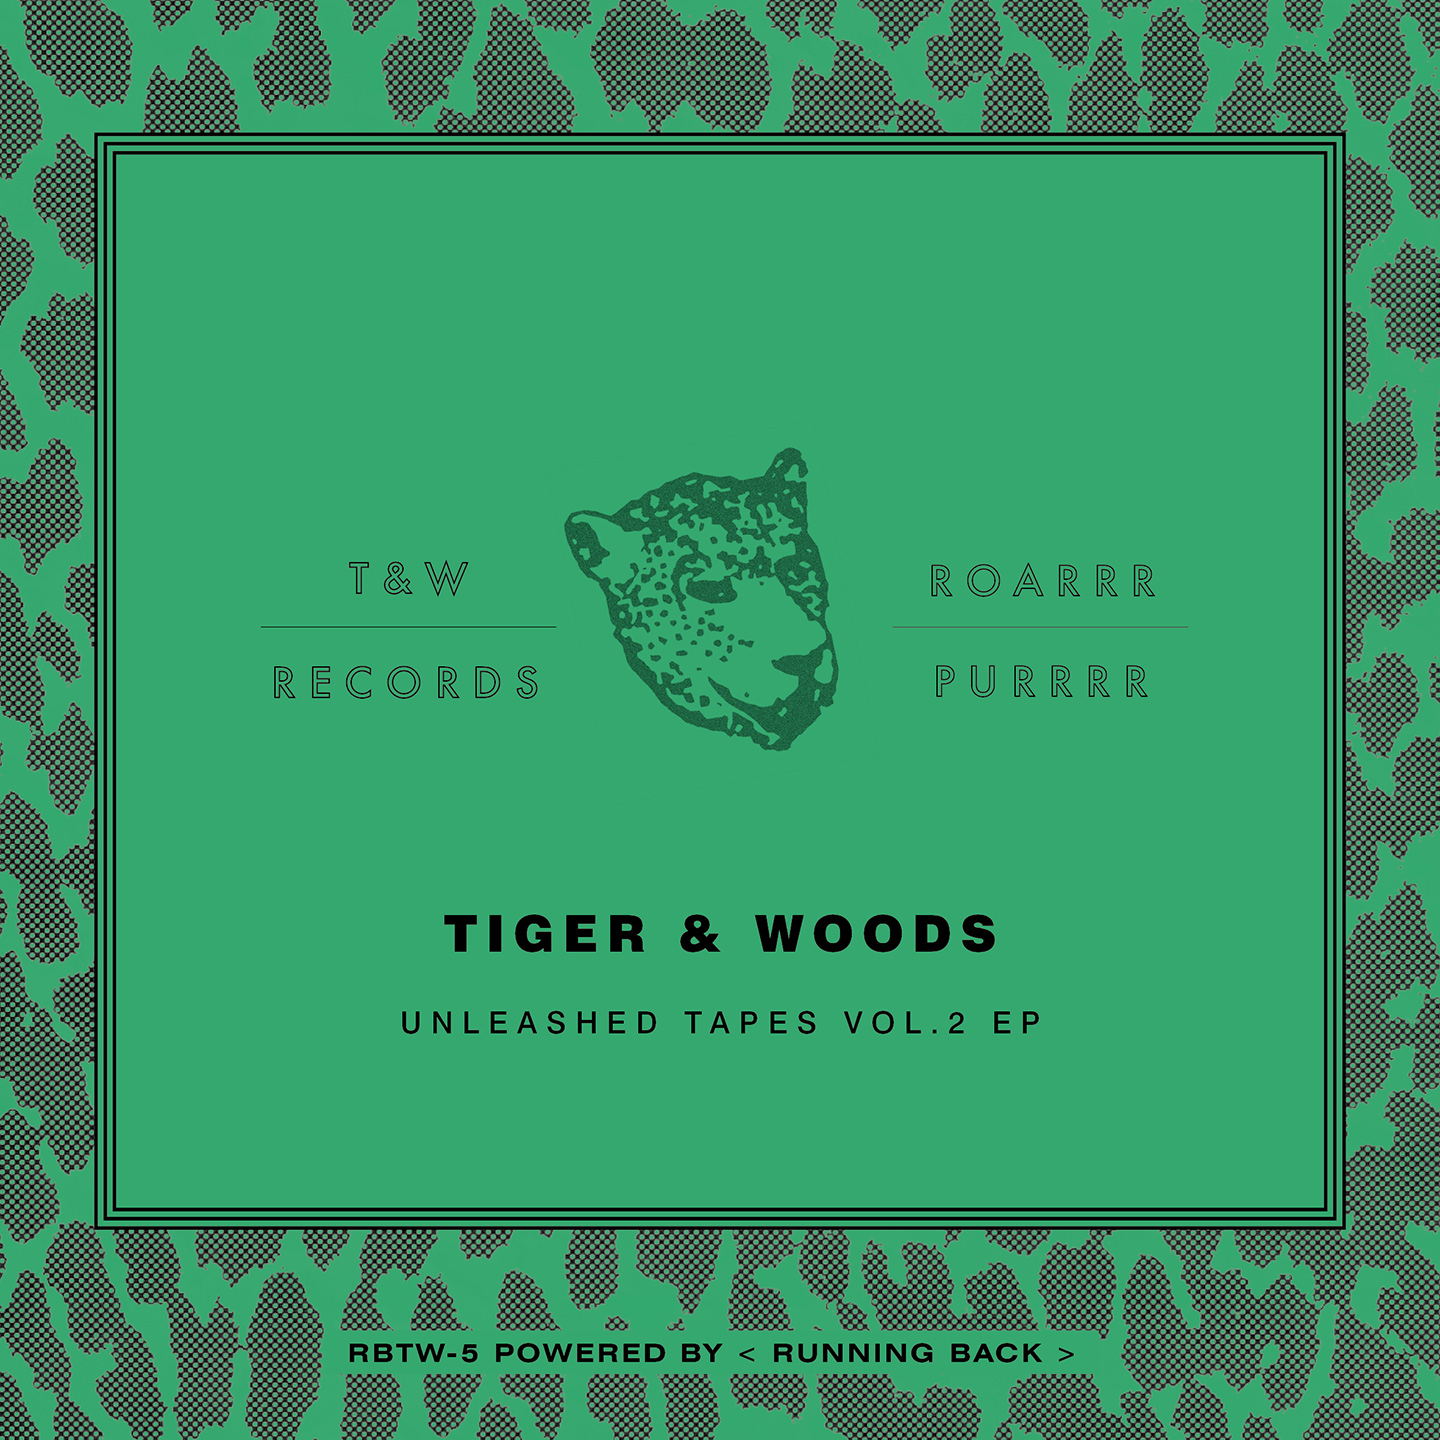 Tiger & Woods ‎- Unleashed Tapes Vol. 2